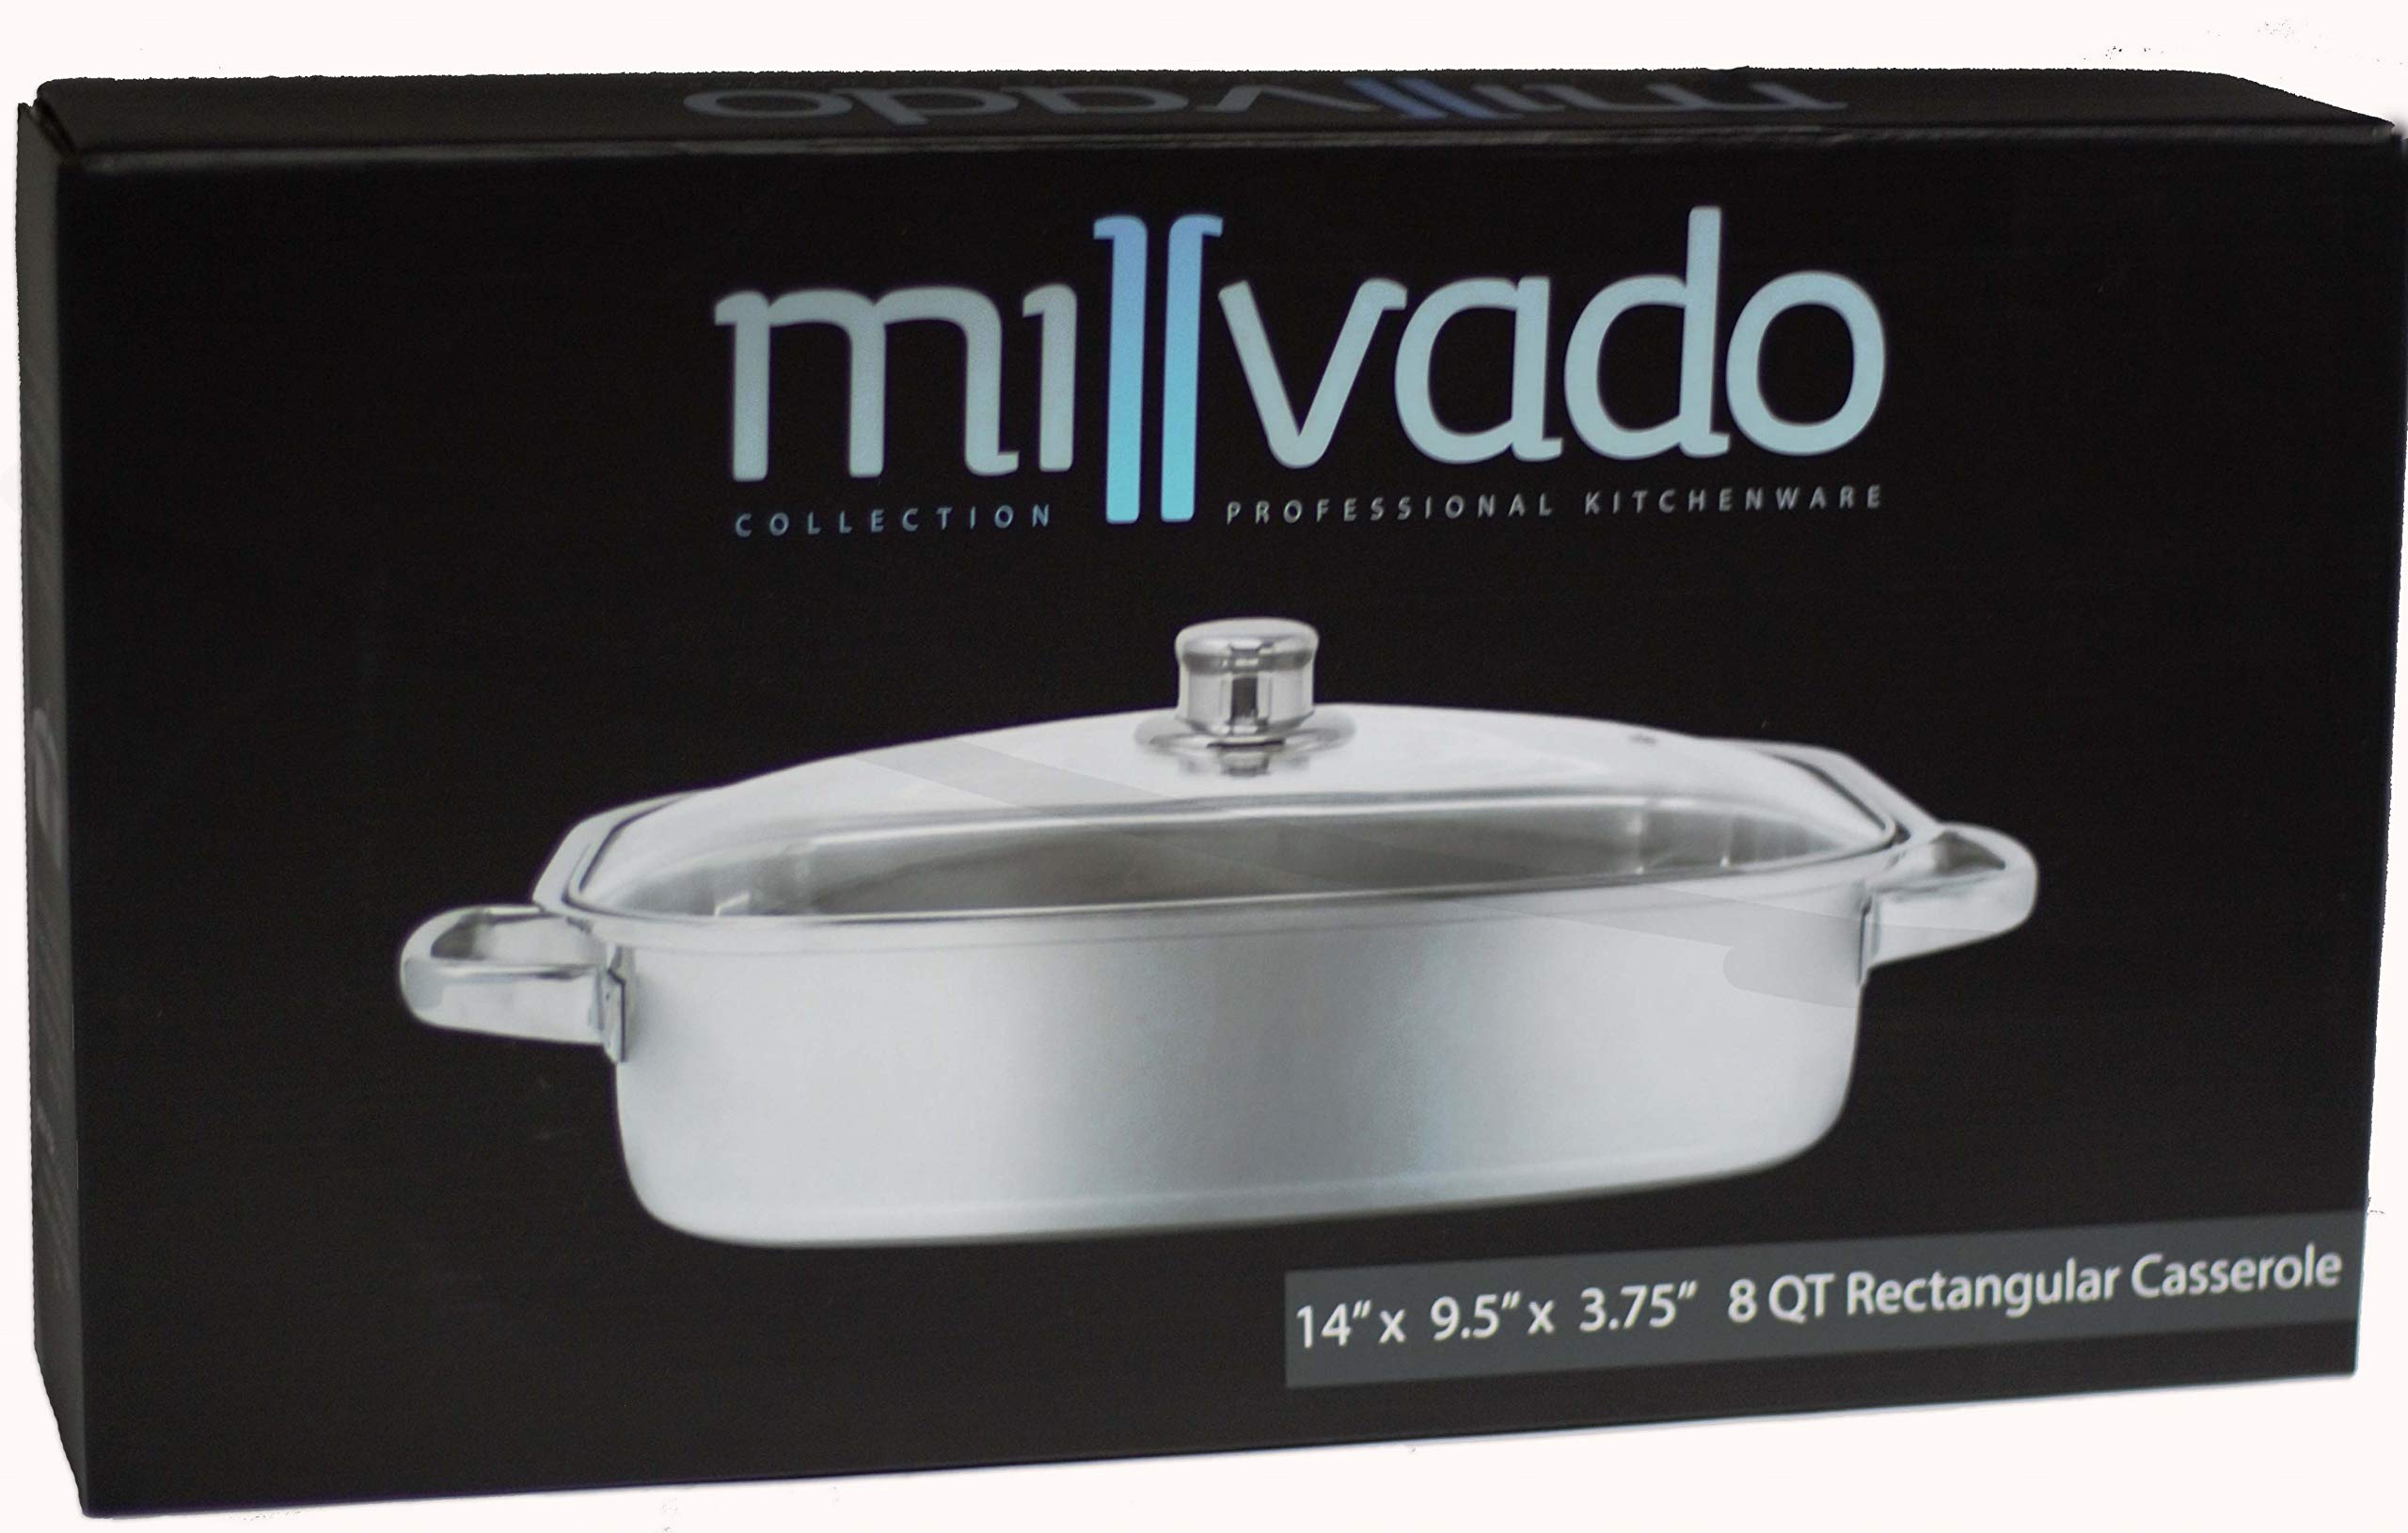 Millvado Stainless Steel Rectangular Casserole | Tempered Glass Lid with Steam Vent, Mirror Finish, Works with Induction Cooktops, Dishwasher Safe, 8 Quart- 14 Inches X 9.5 Inches